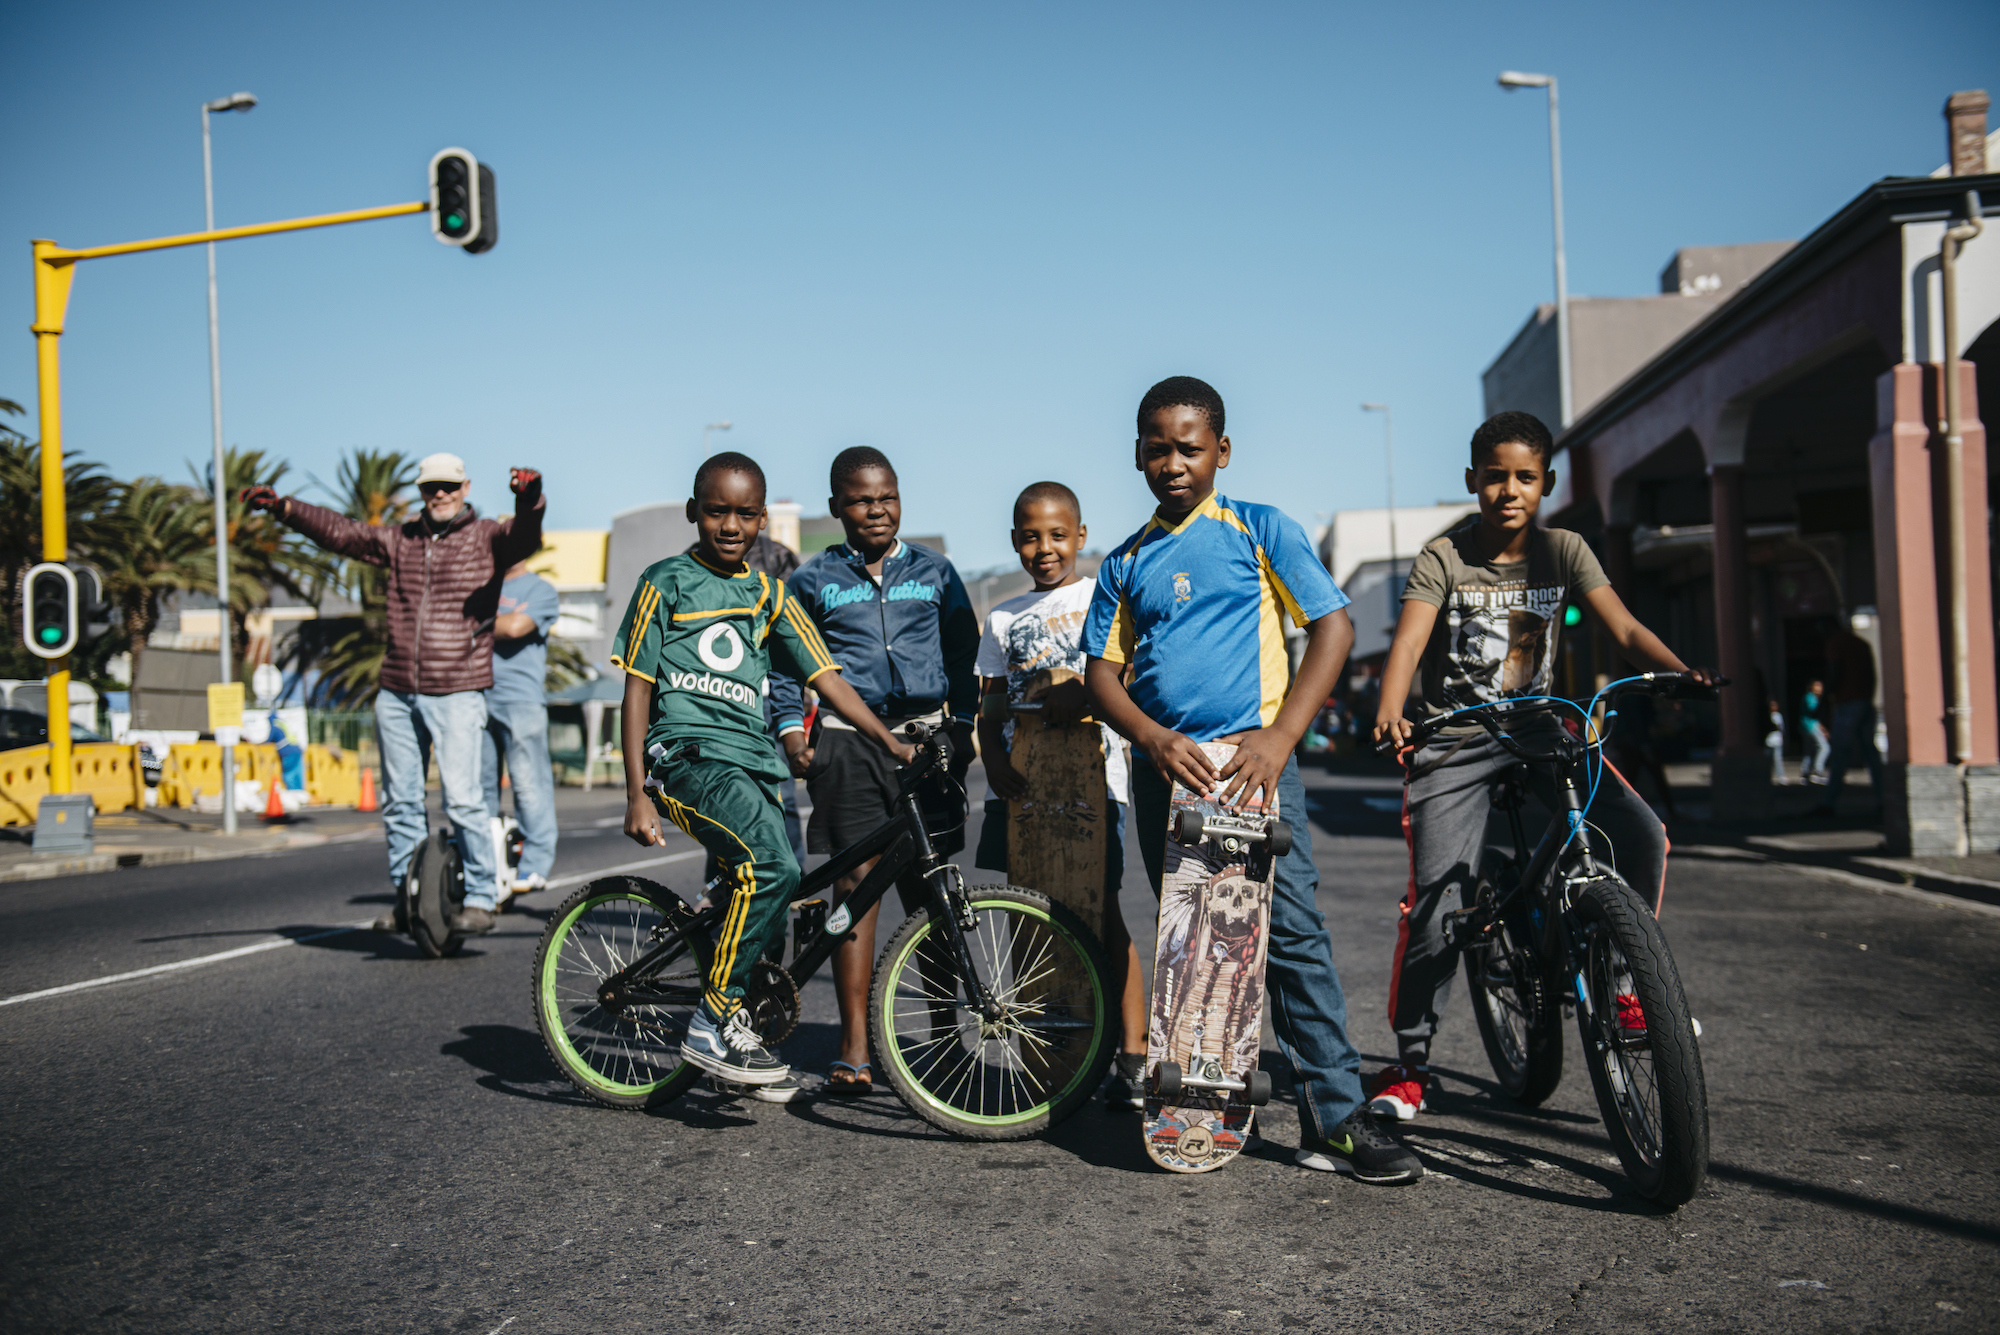 A group of kids in Capetown, South Africa.